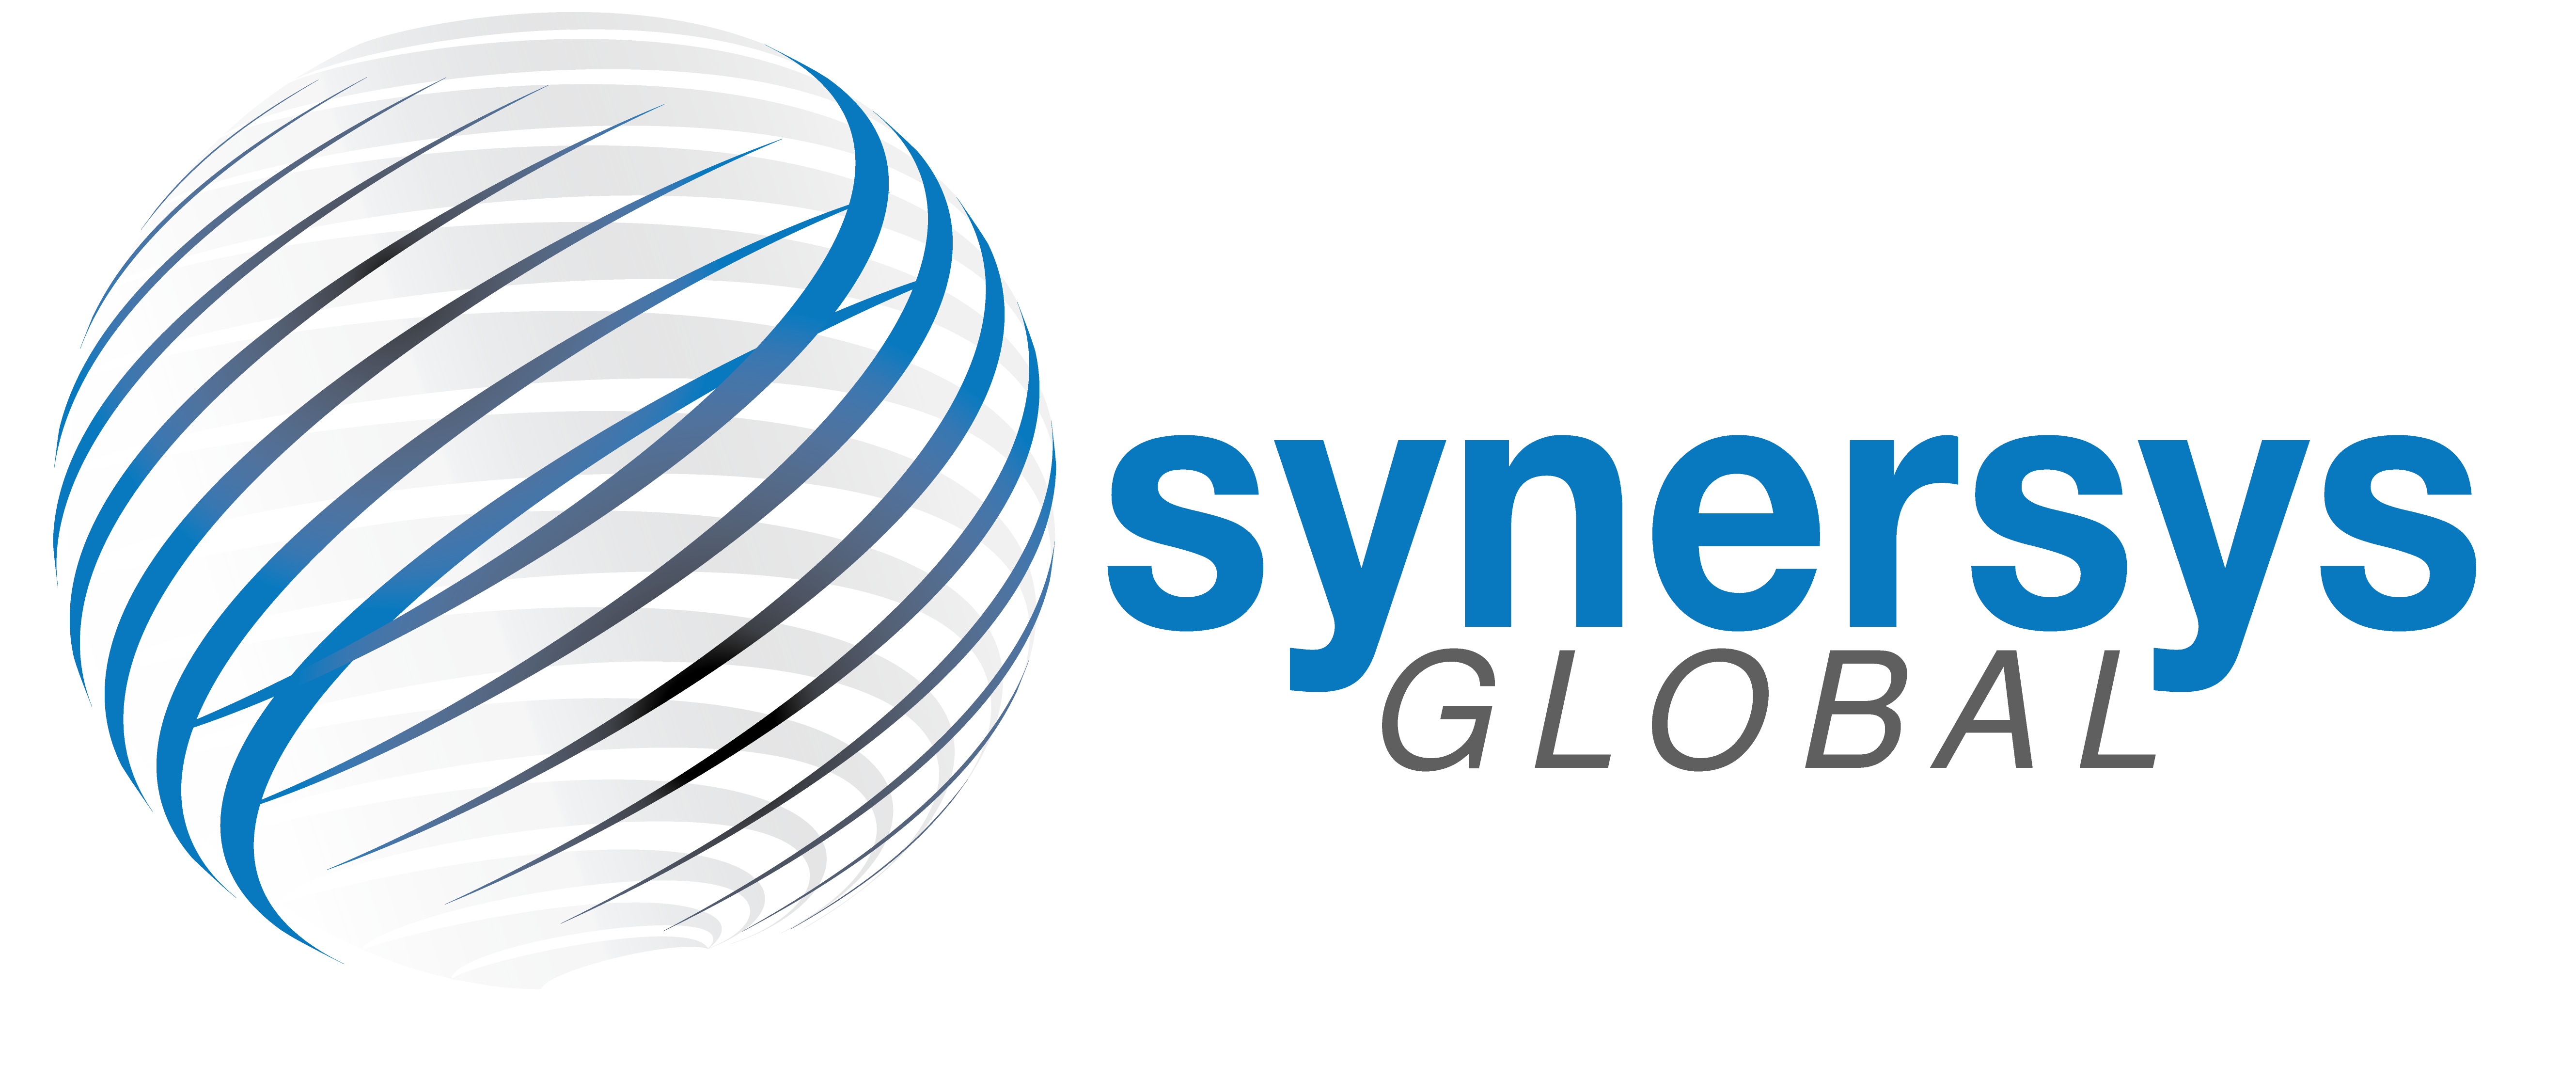 synersysglobal.com